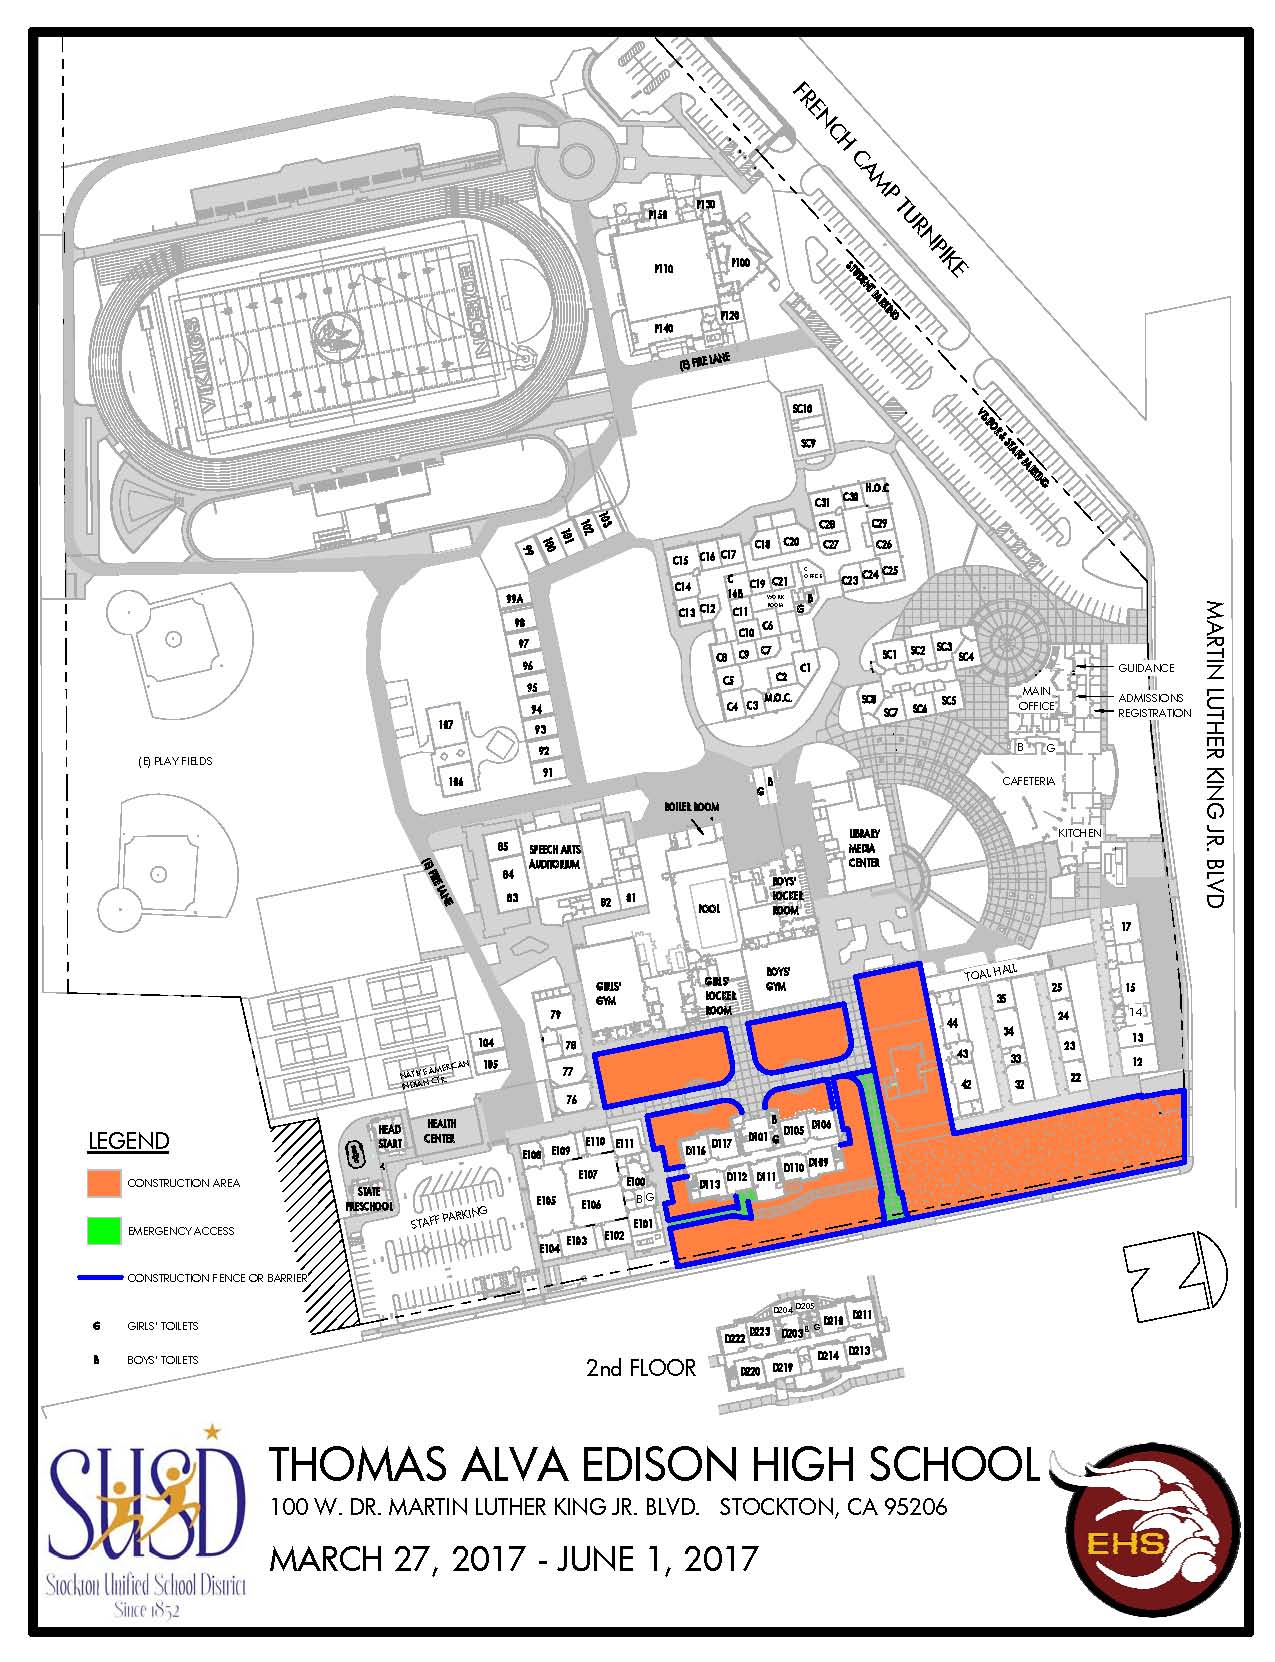 Usd Vermillion Campus Map.Usd Campus Map Candian Map Nj Shore Map